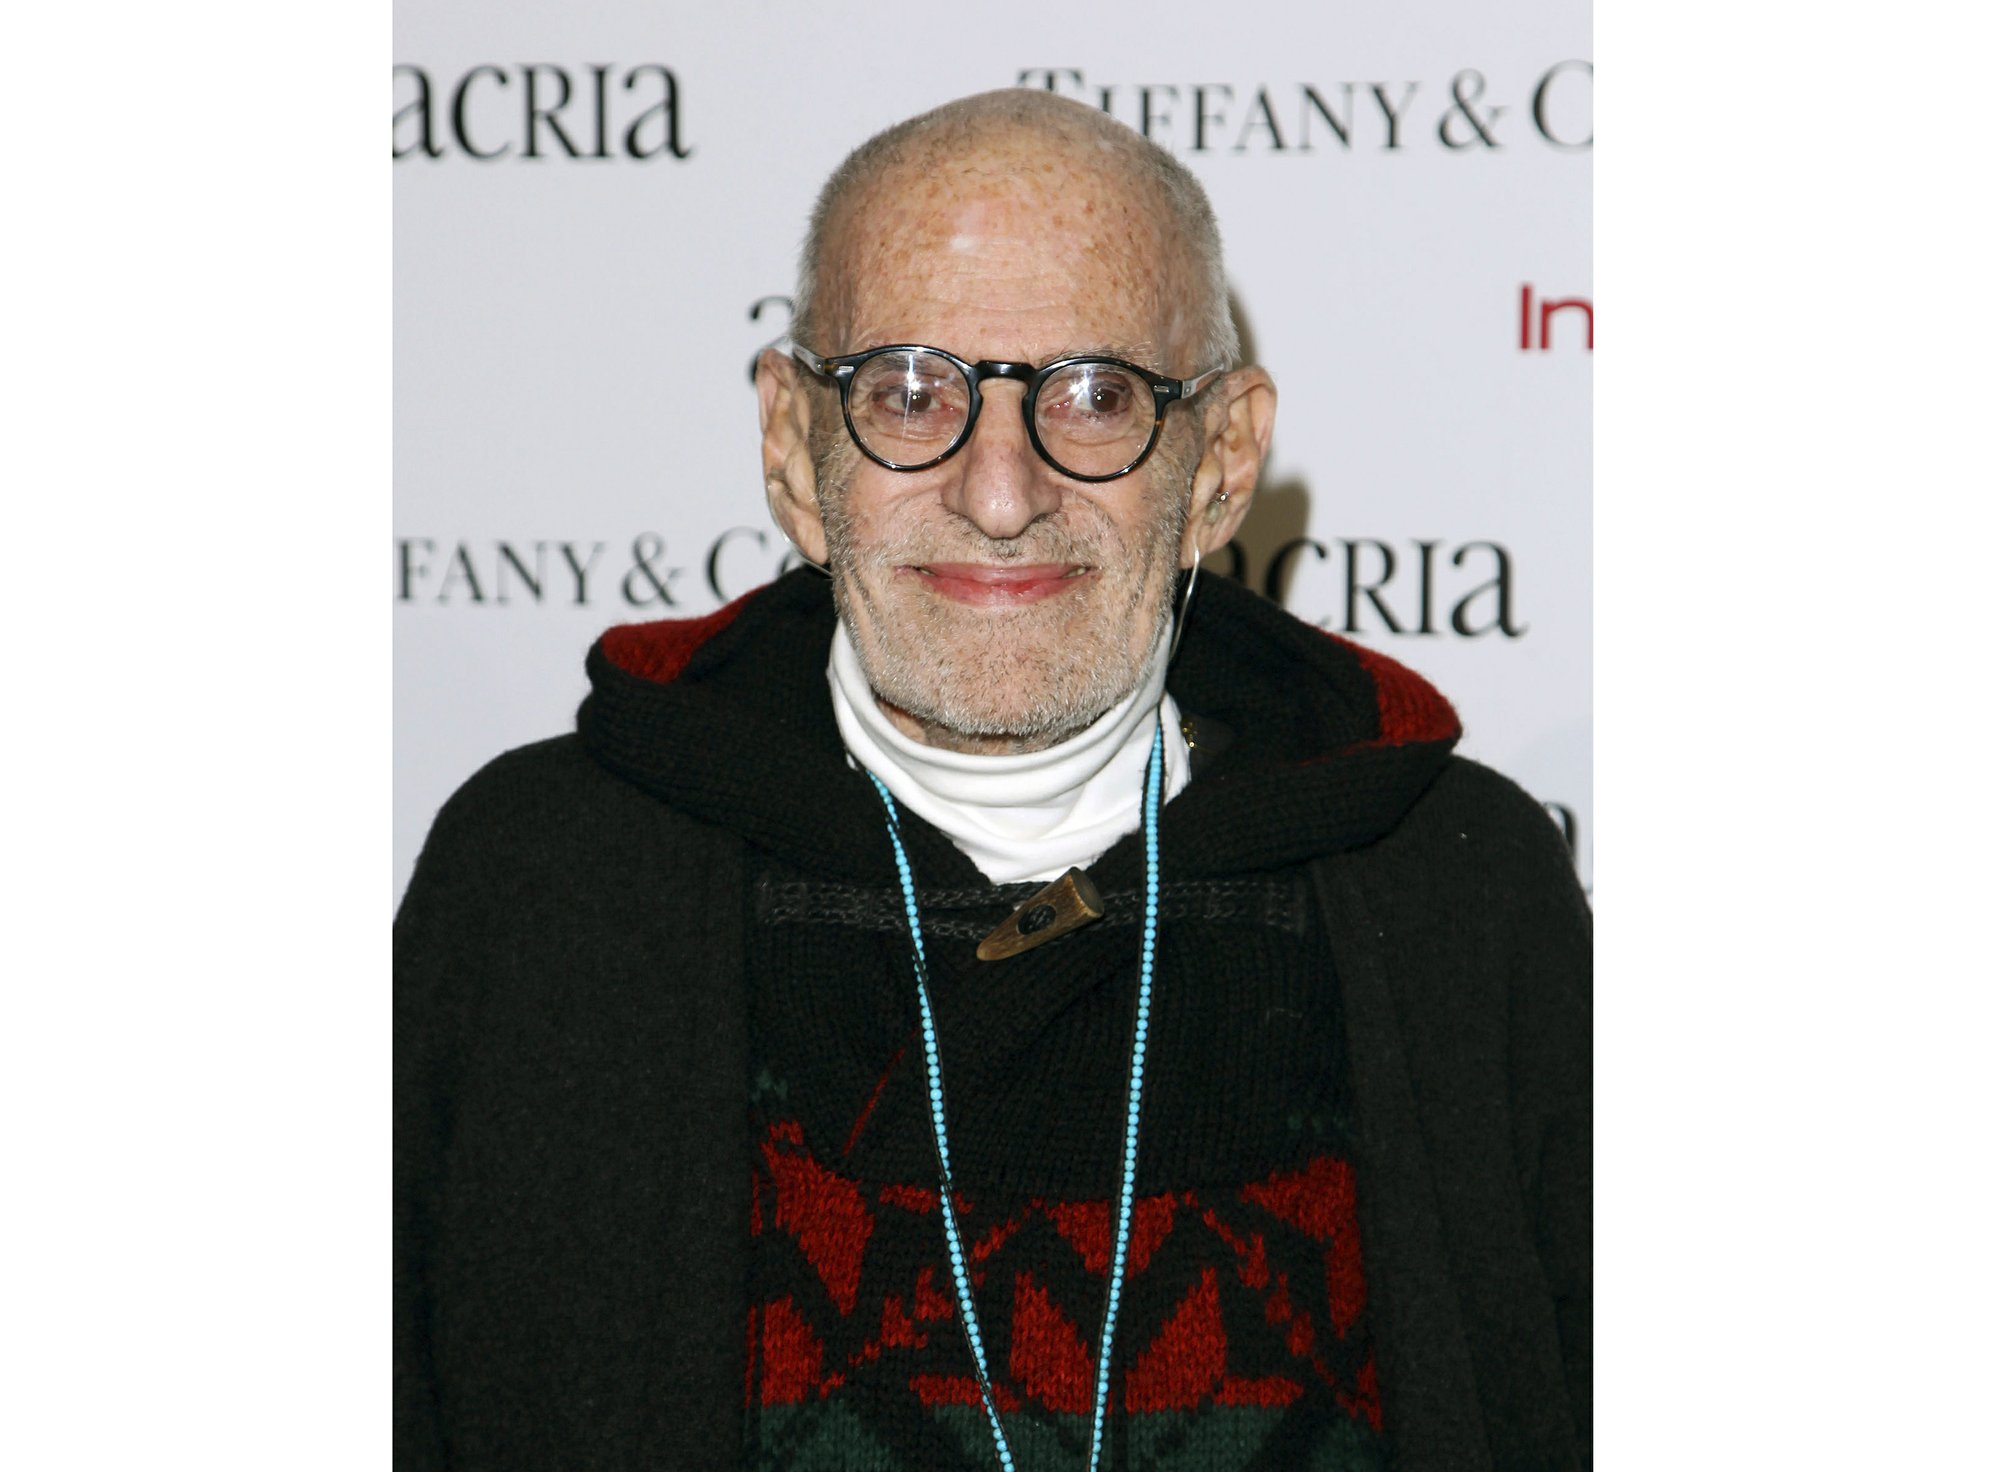 Biography of playwright, activist Larry Kramer in the works